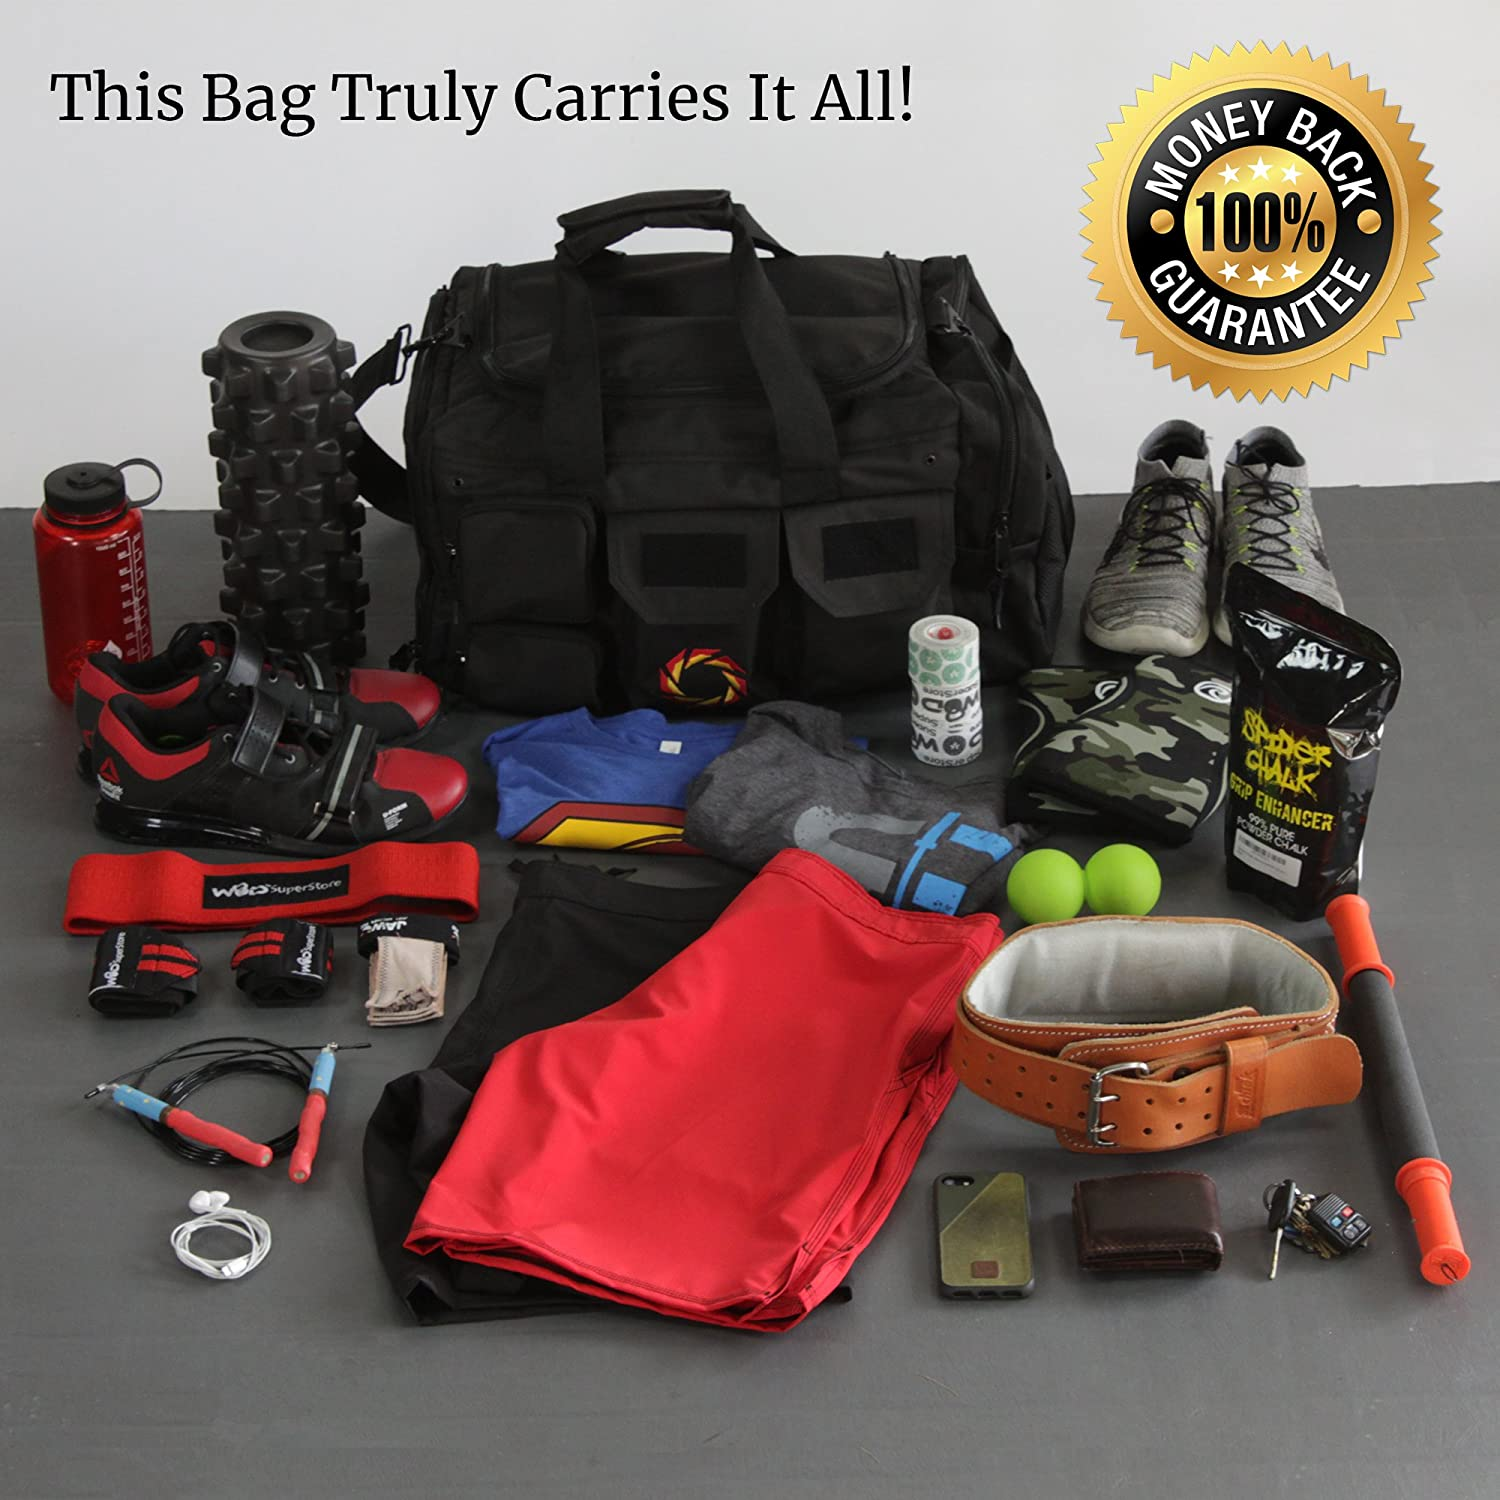 Rigor Gear Large Gym Bag – Holds the Most